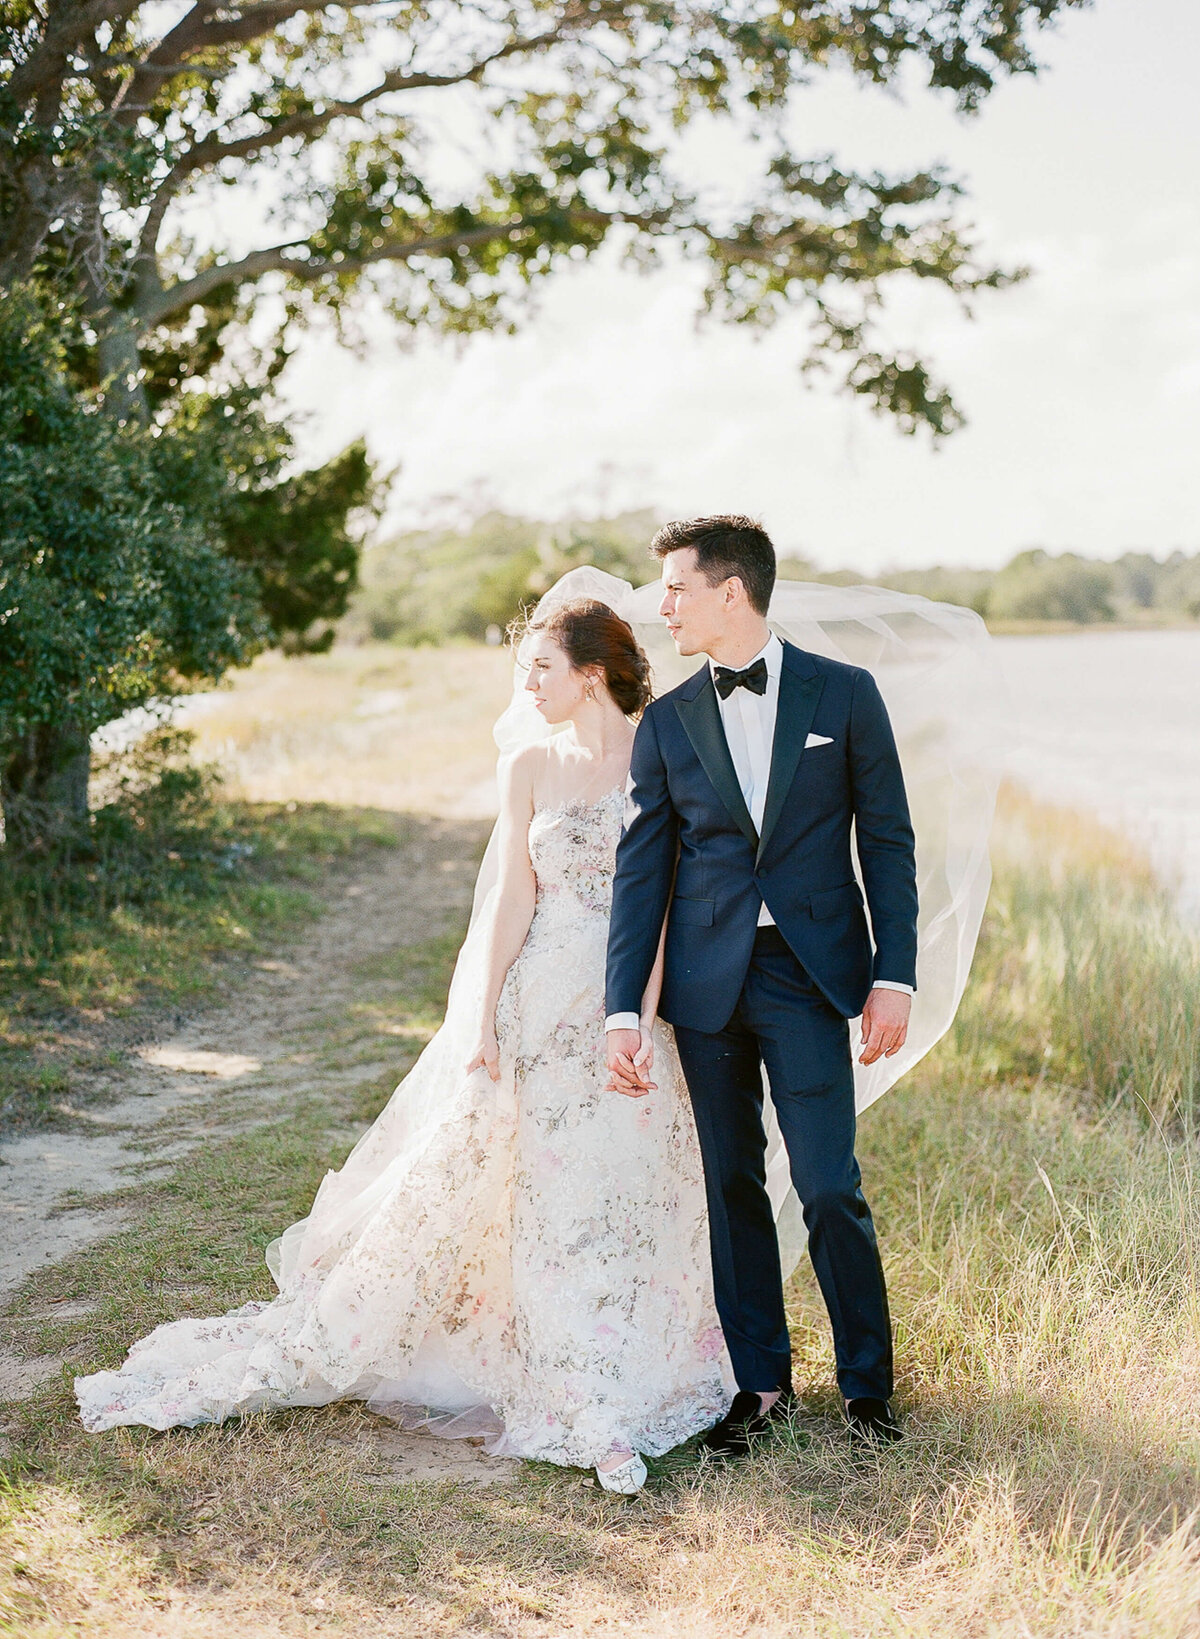 kiawah-river-wedding-clay-austin-photography-28